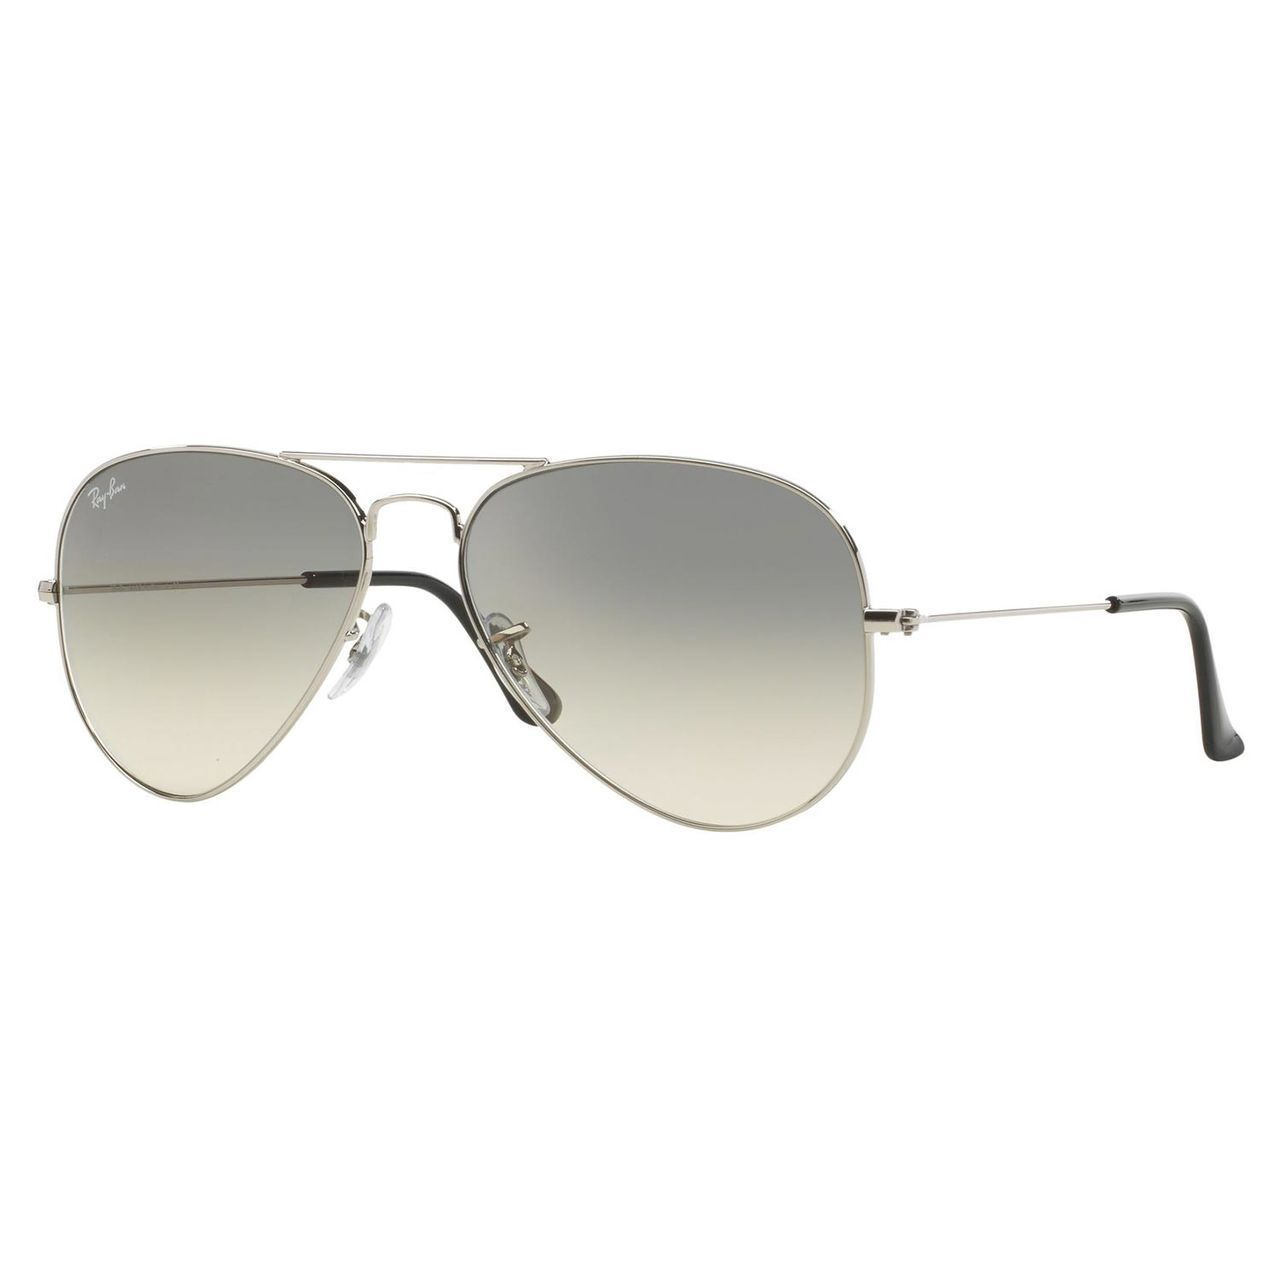 eff430bf08c Shop Ray-Ban RB3025 003 32 Silver Gradient Large Aviator Sunglasses - Free  Shipping Today - Overstock - 9632855